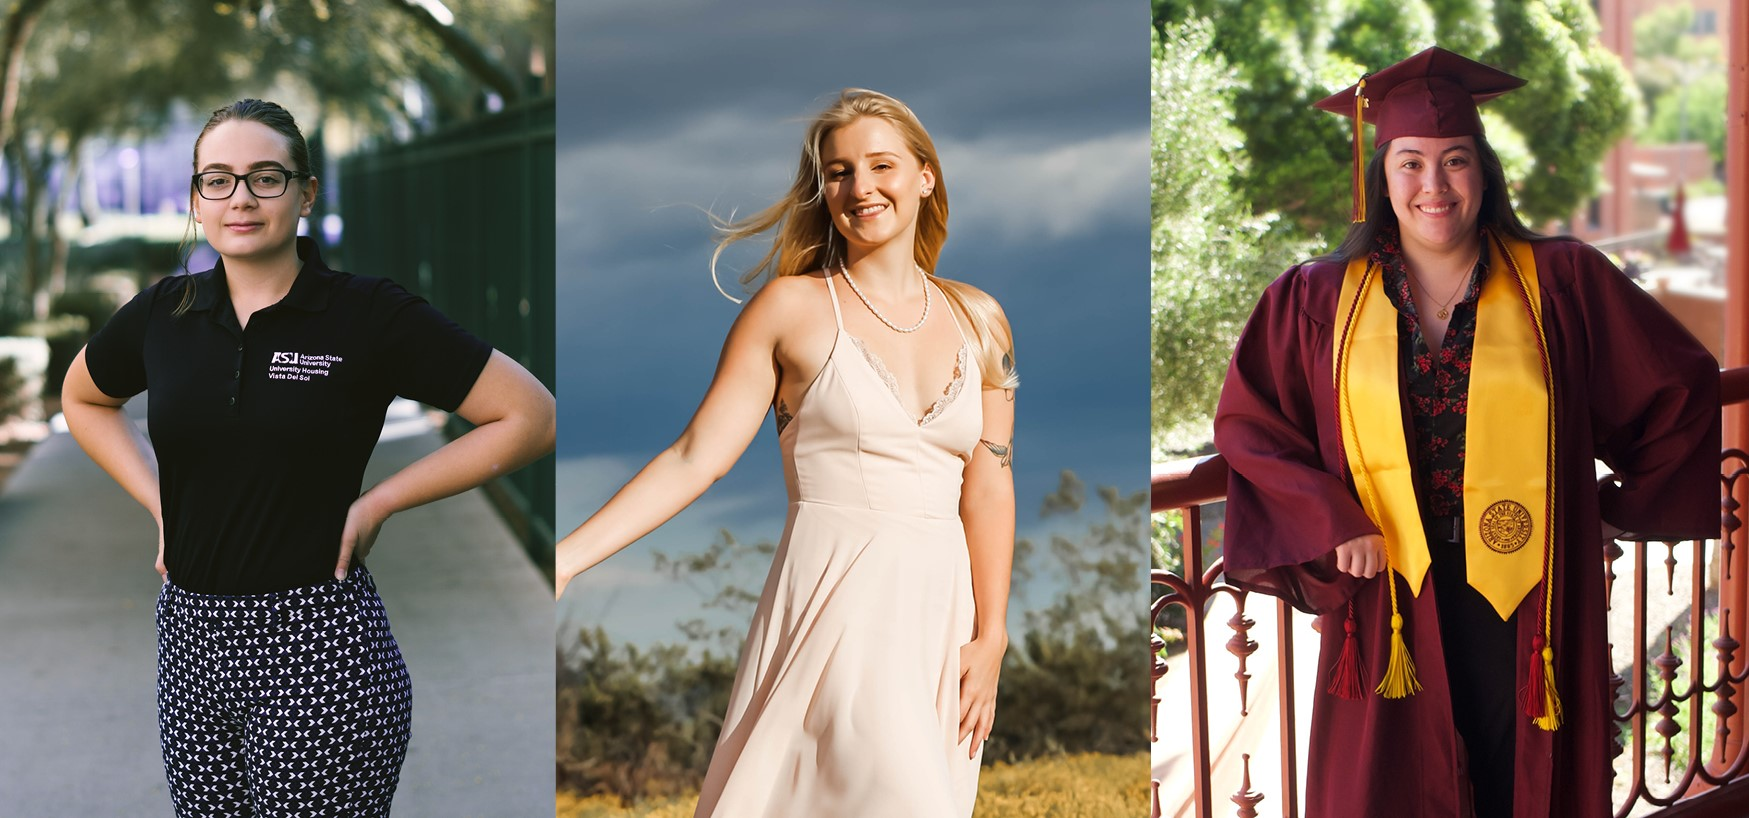 Composite image of 3 creative writers: Megan Bromley, Brenna Camping and Rachel Donalson. / Courtesy photos